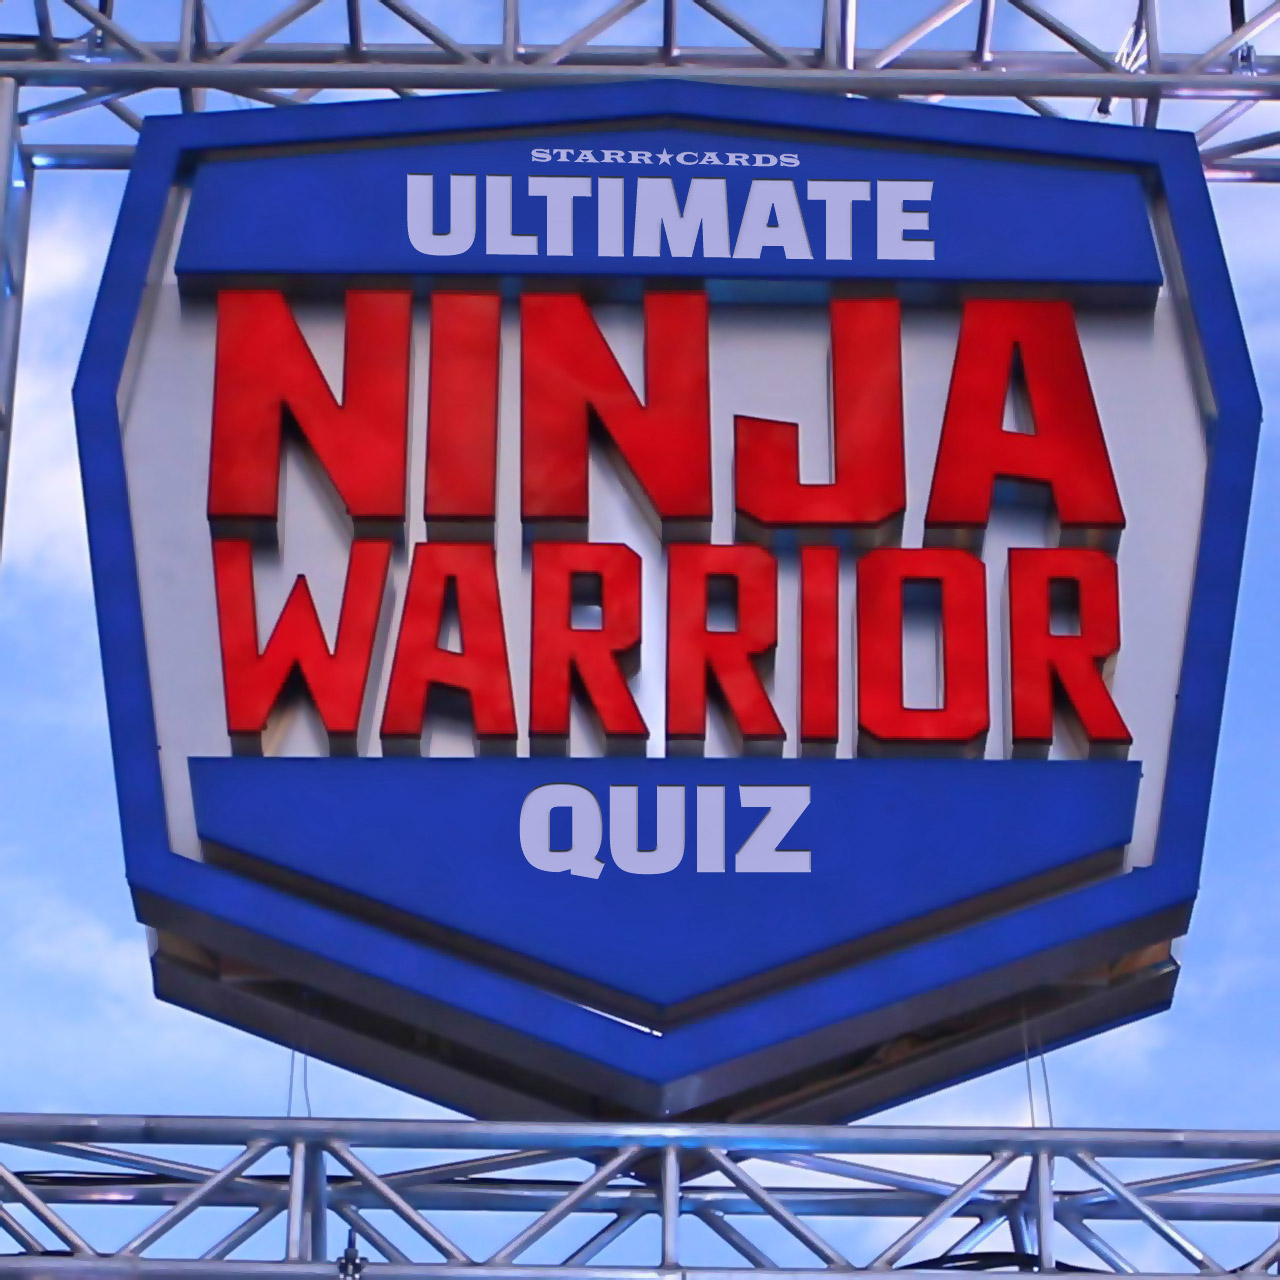 Starr Cards presents the Ultimate Ninja Warrior History Quiz